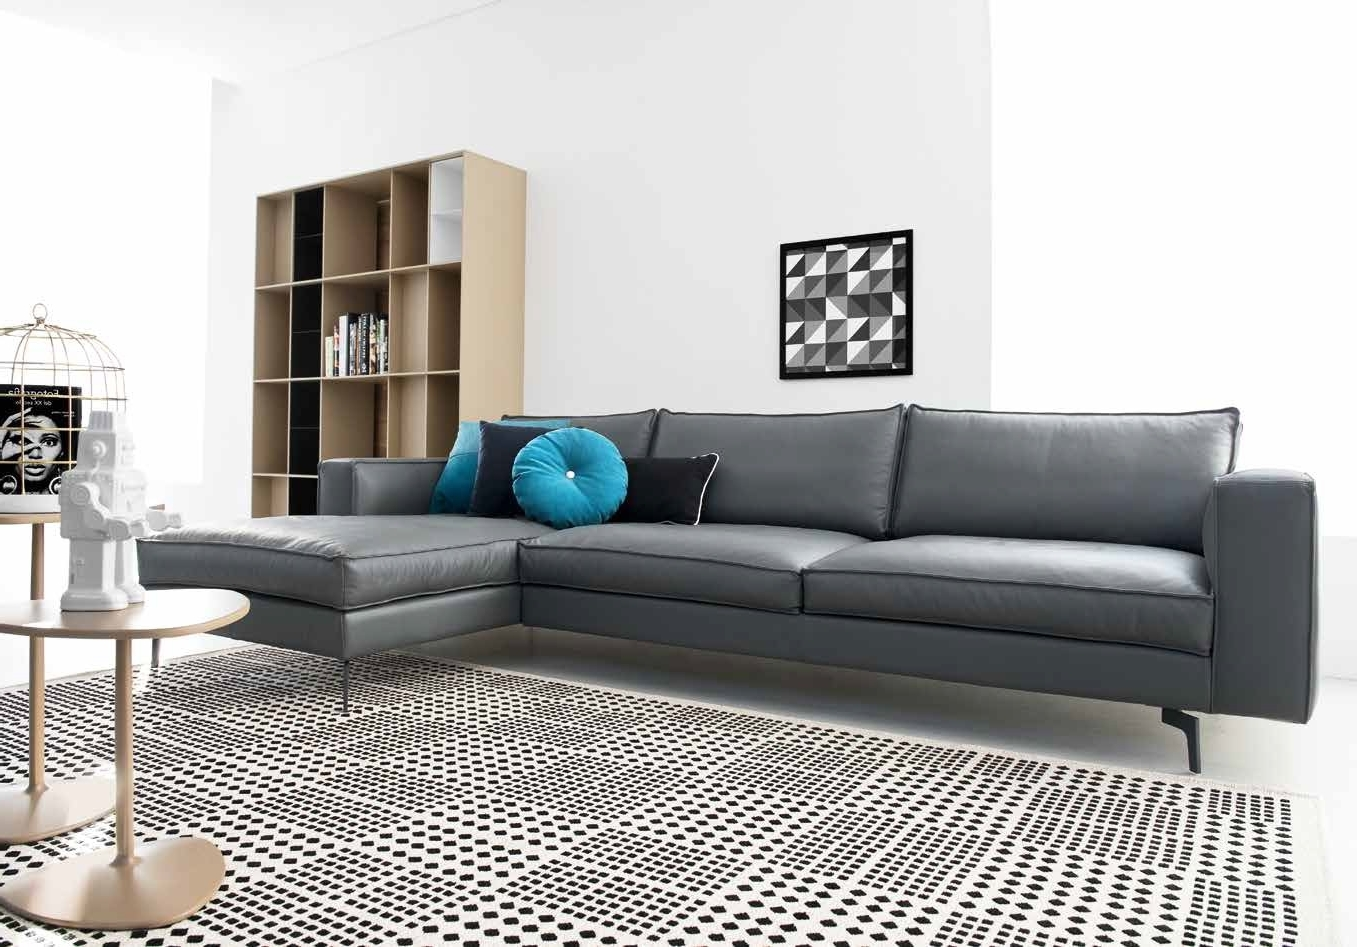 Nashua Nh Sectional Sofas With Most Recent Square Sectional Sofa Cs/3371, Calligaris Italy – Italmoda (View 11 of 20)